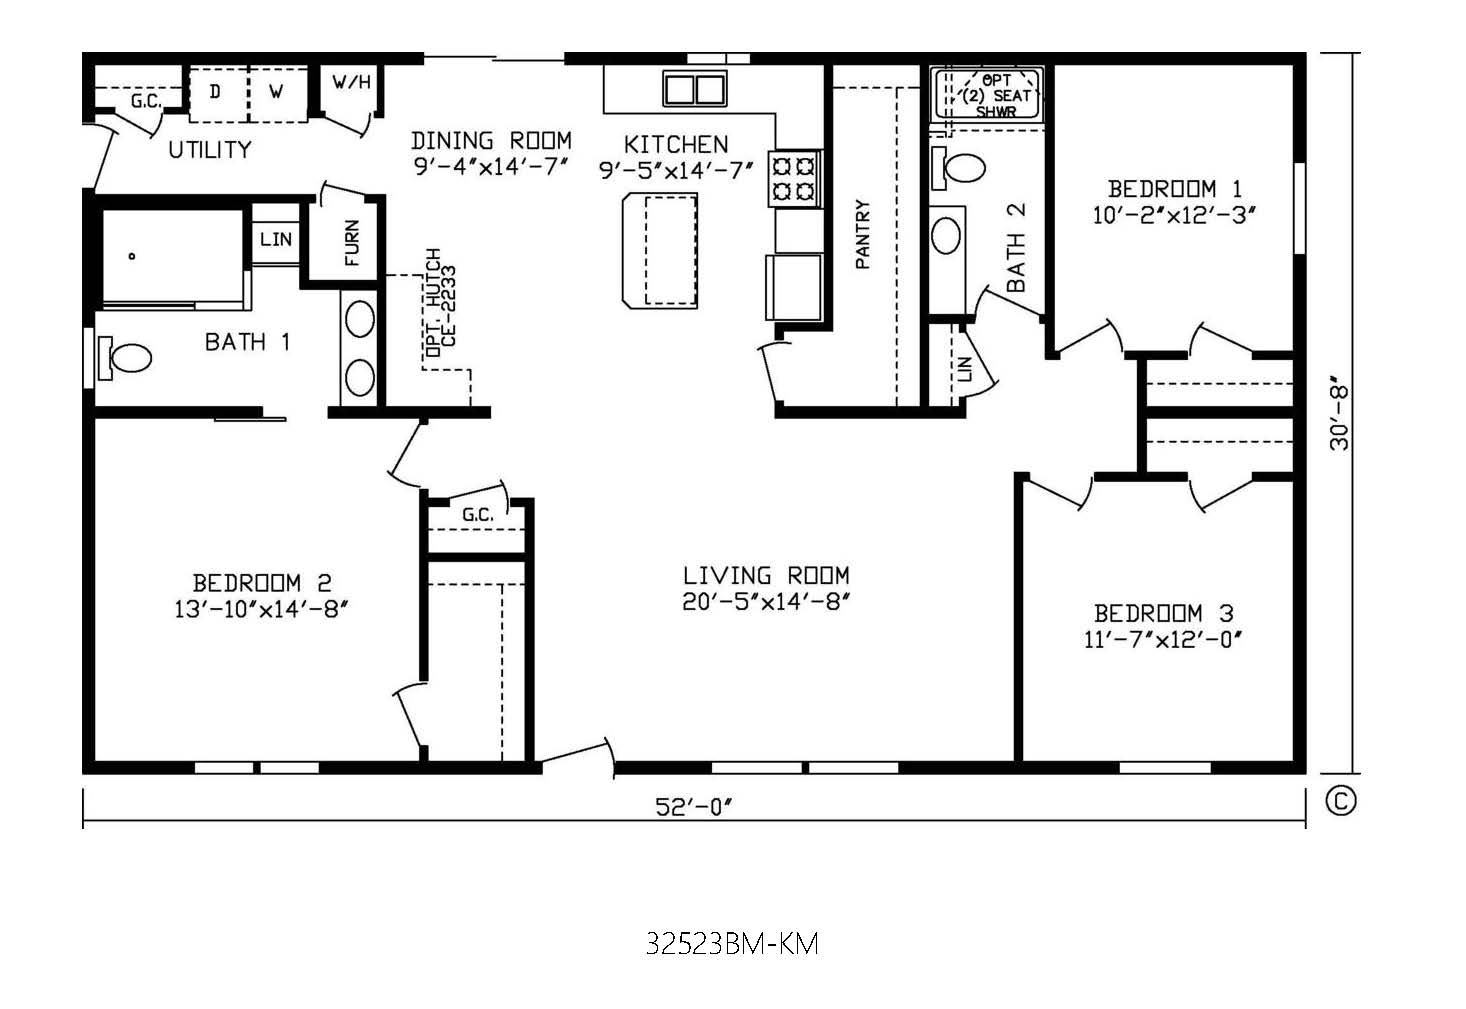 How Much Is A 3 Bedroom 2 Bath Modular Home